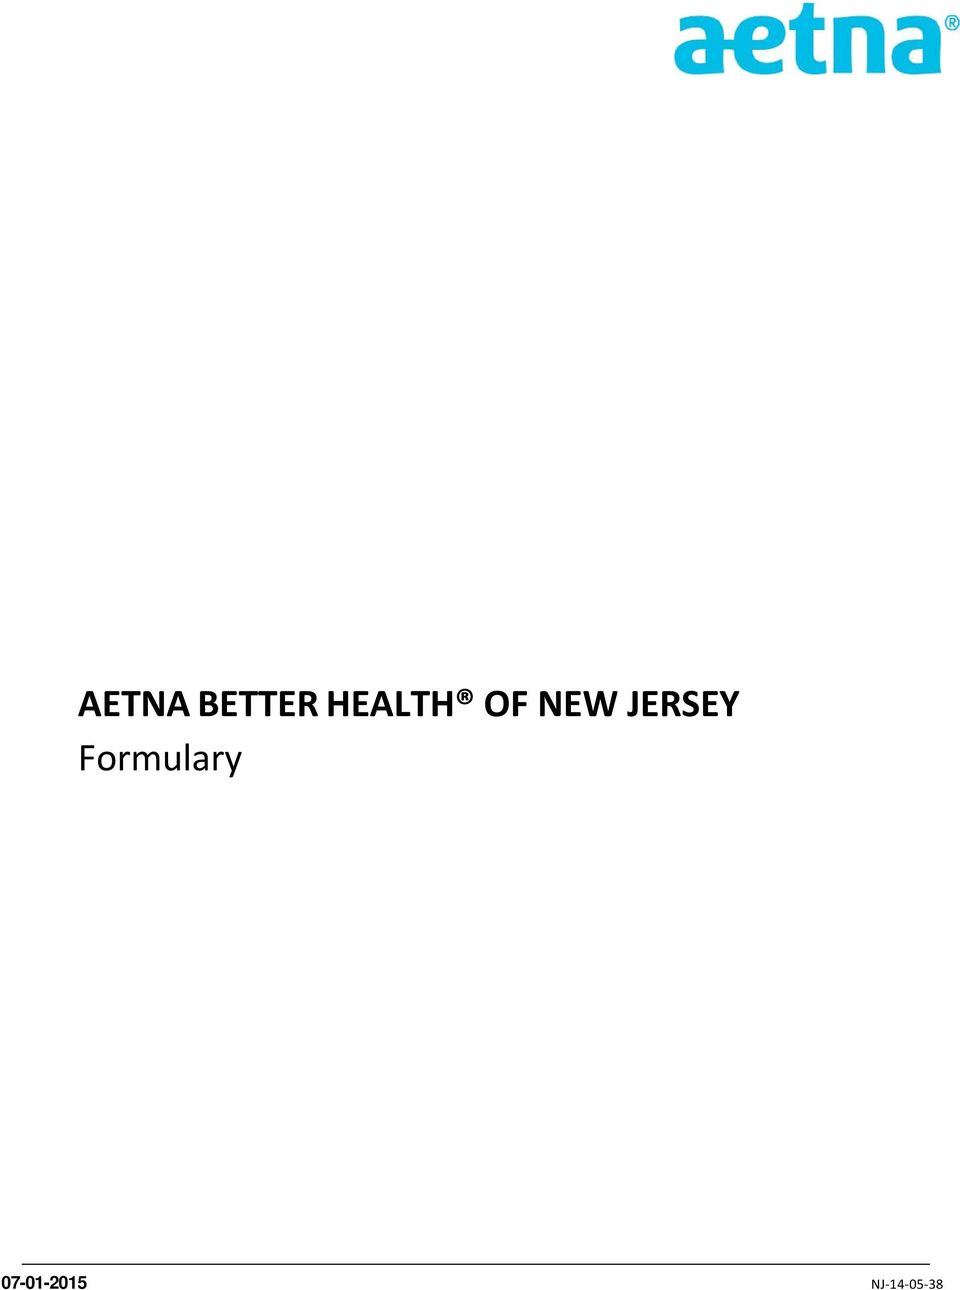 AETNA BETTER HEALTH OF NEW JERSEY Formulary - PDF